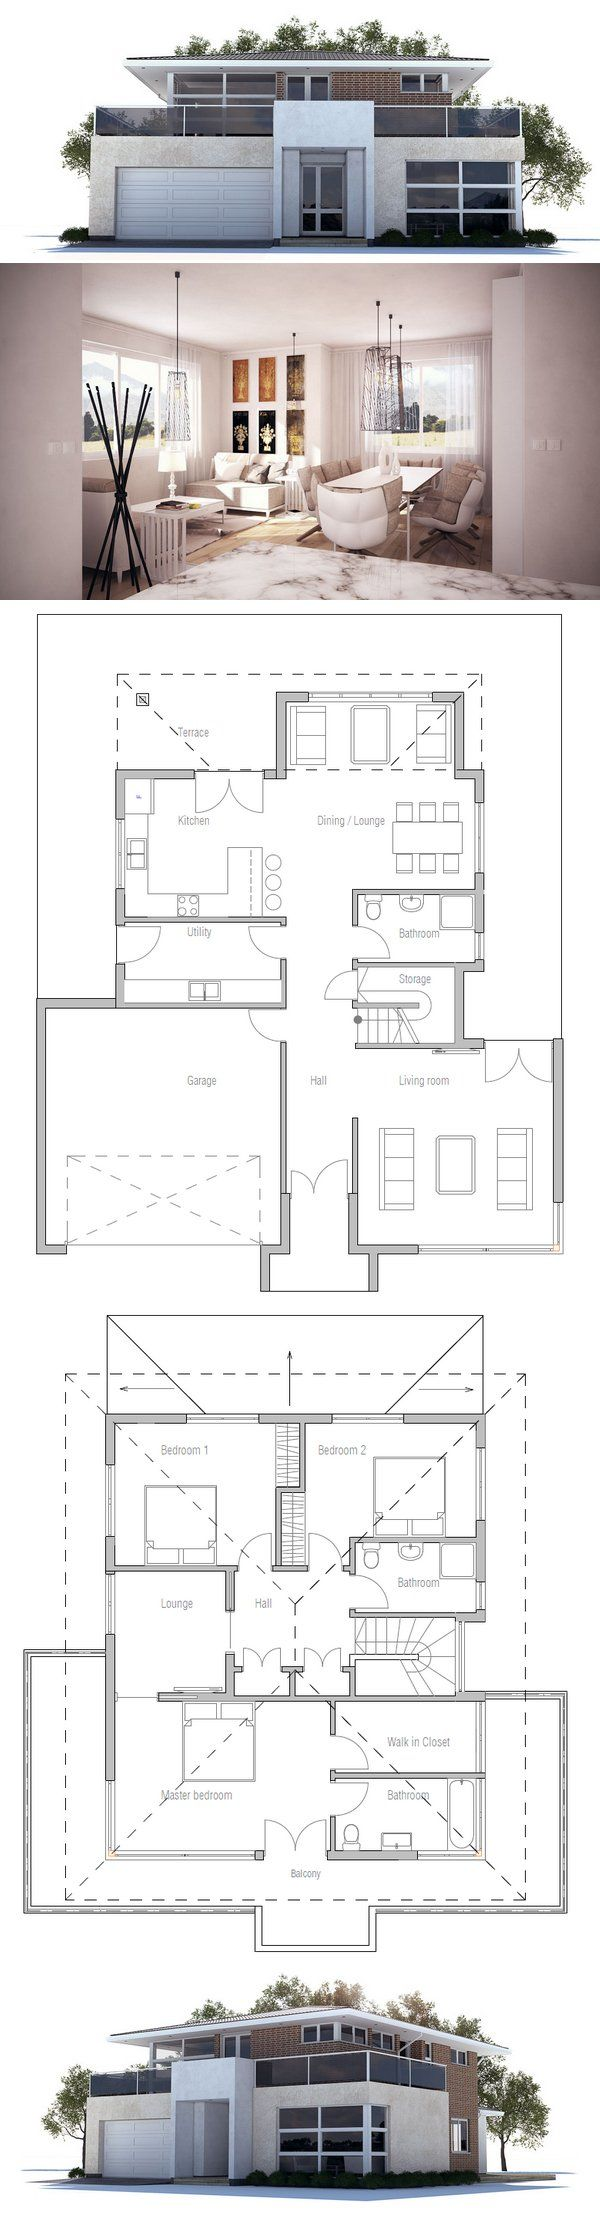 Best 25+ Modern floor plans ideas on Pinterest | Modern house ...